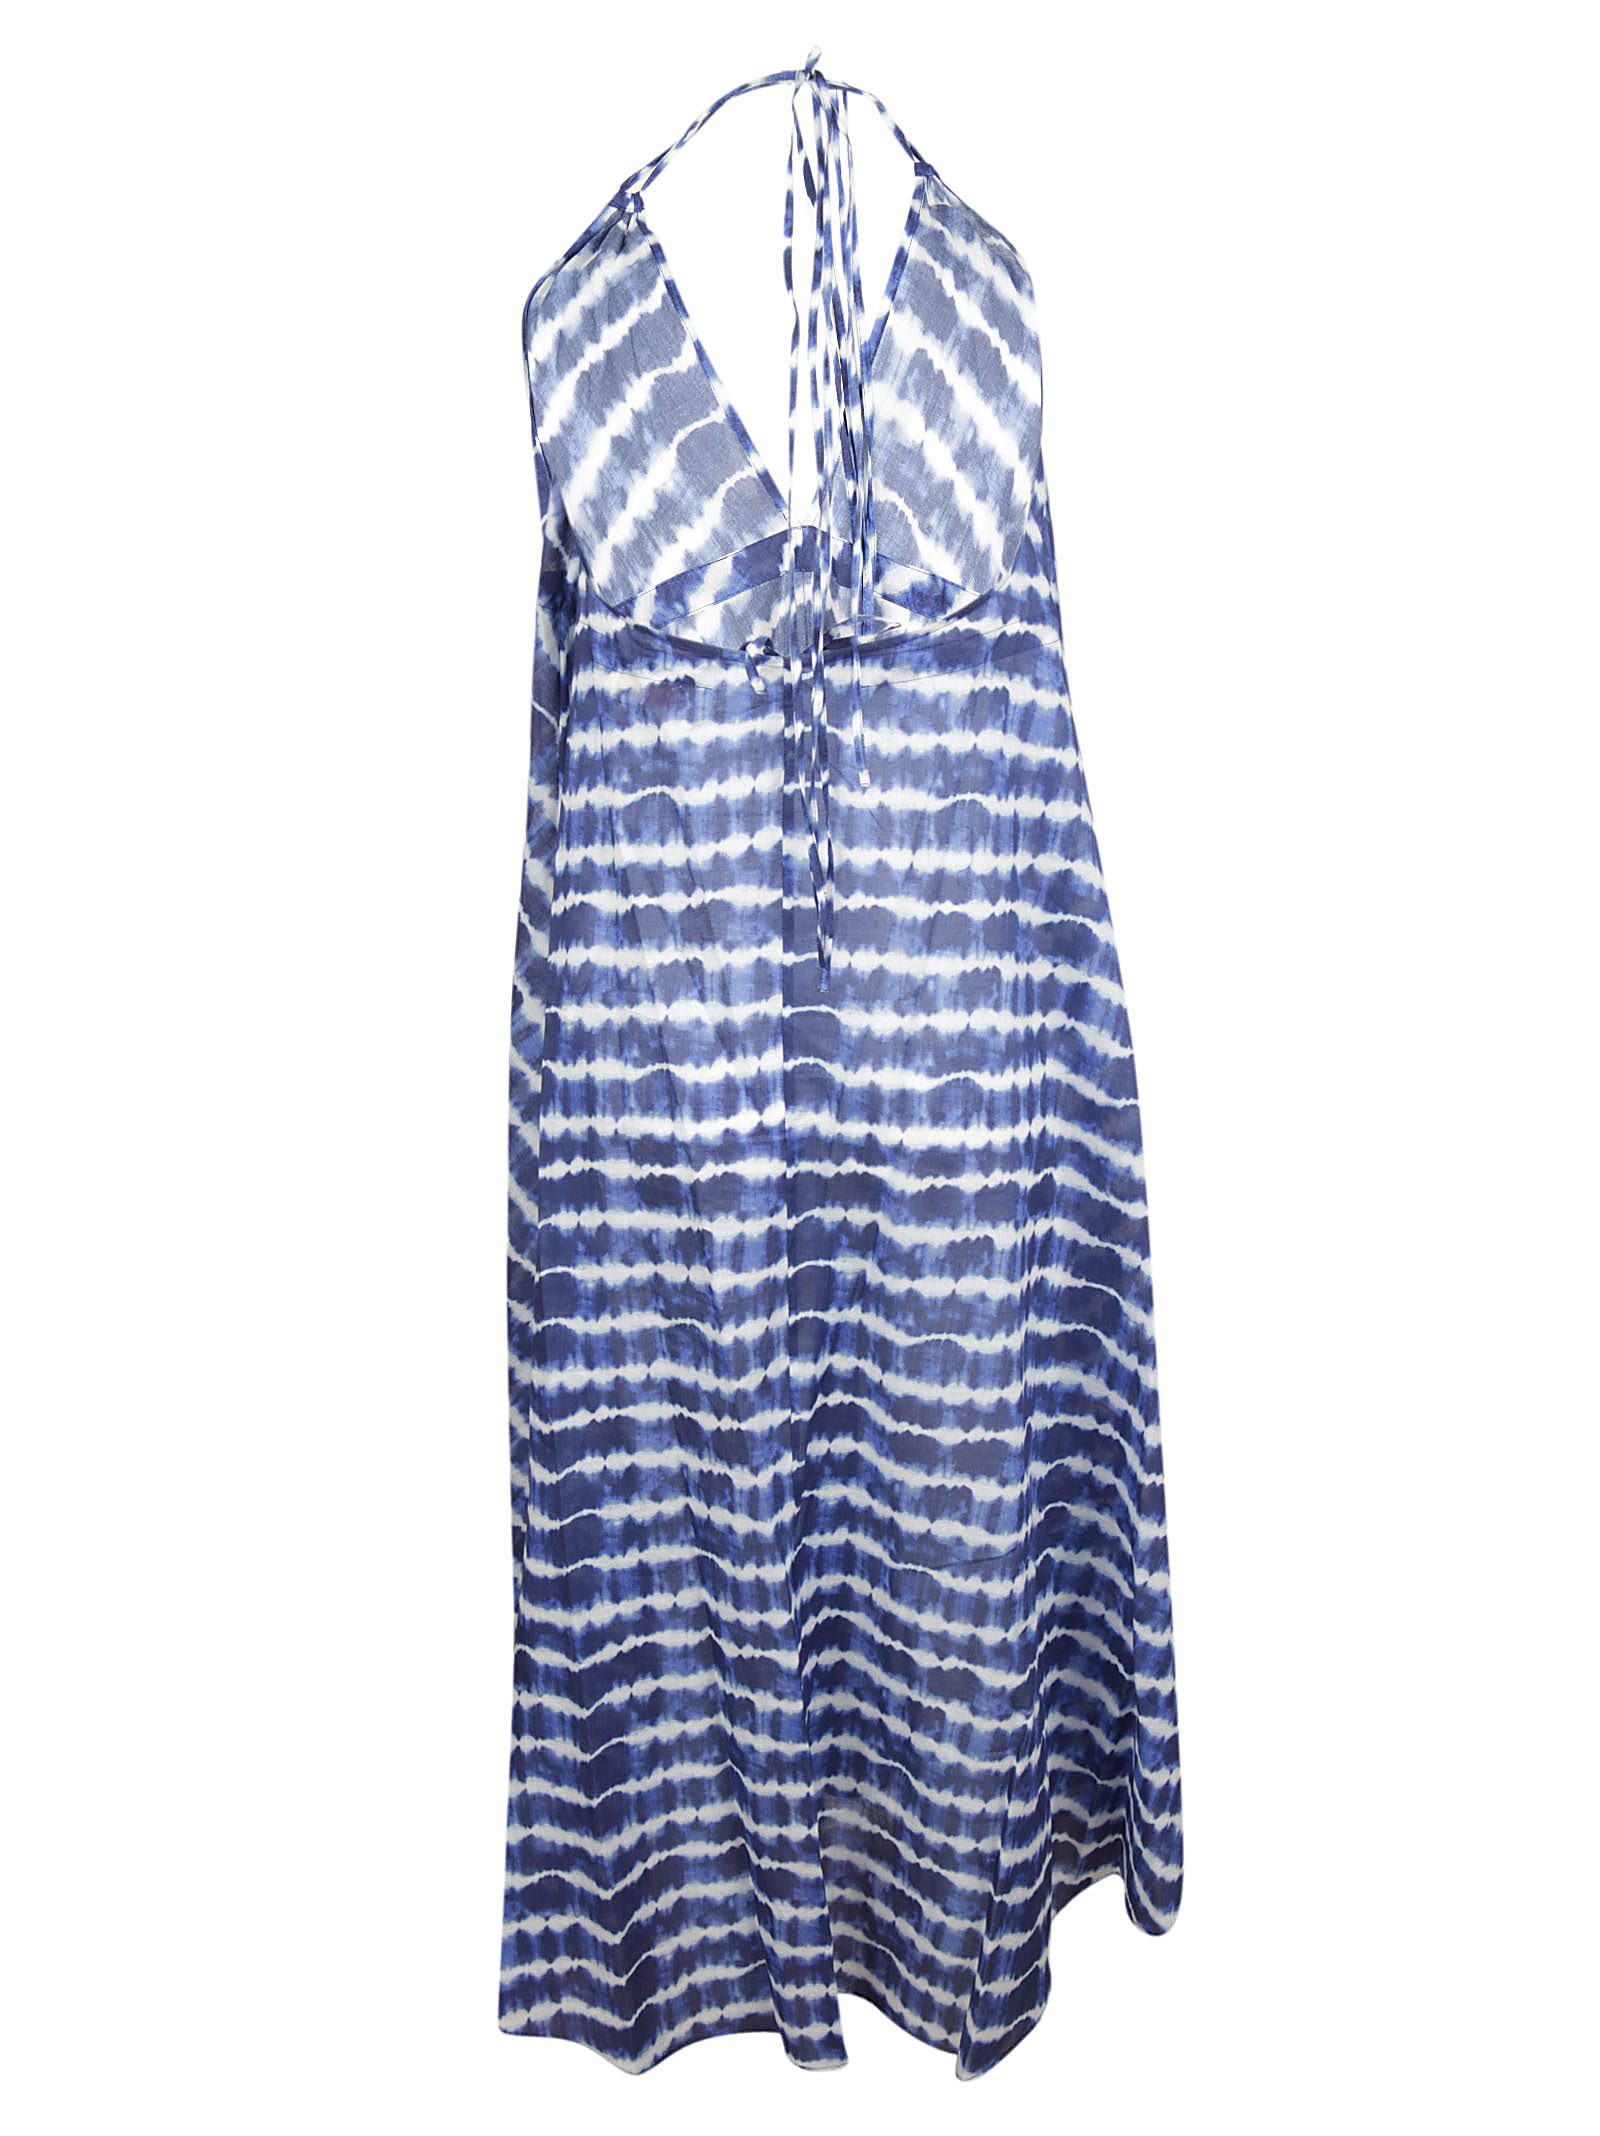 Tory Burch Tory Burch Tie Midi Dress